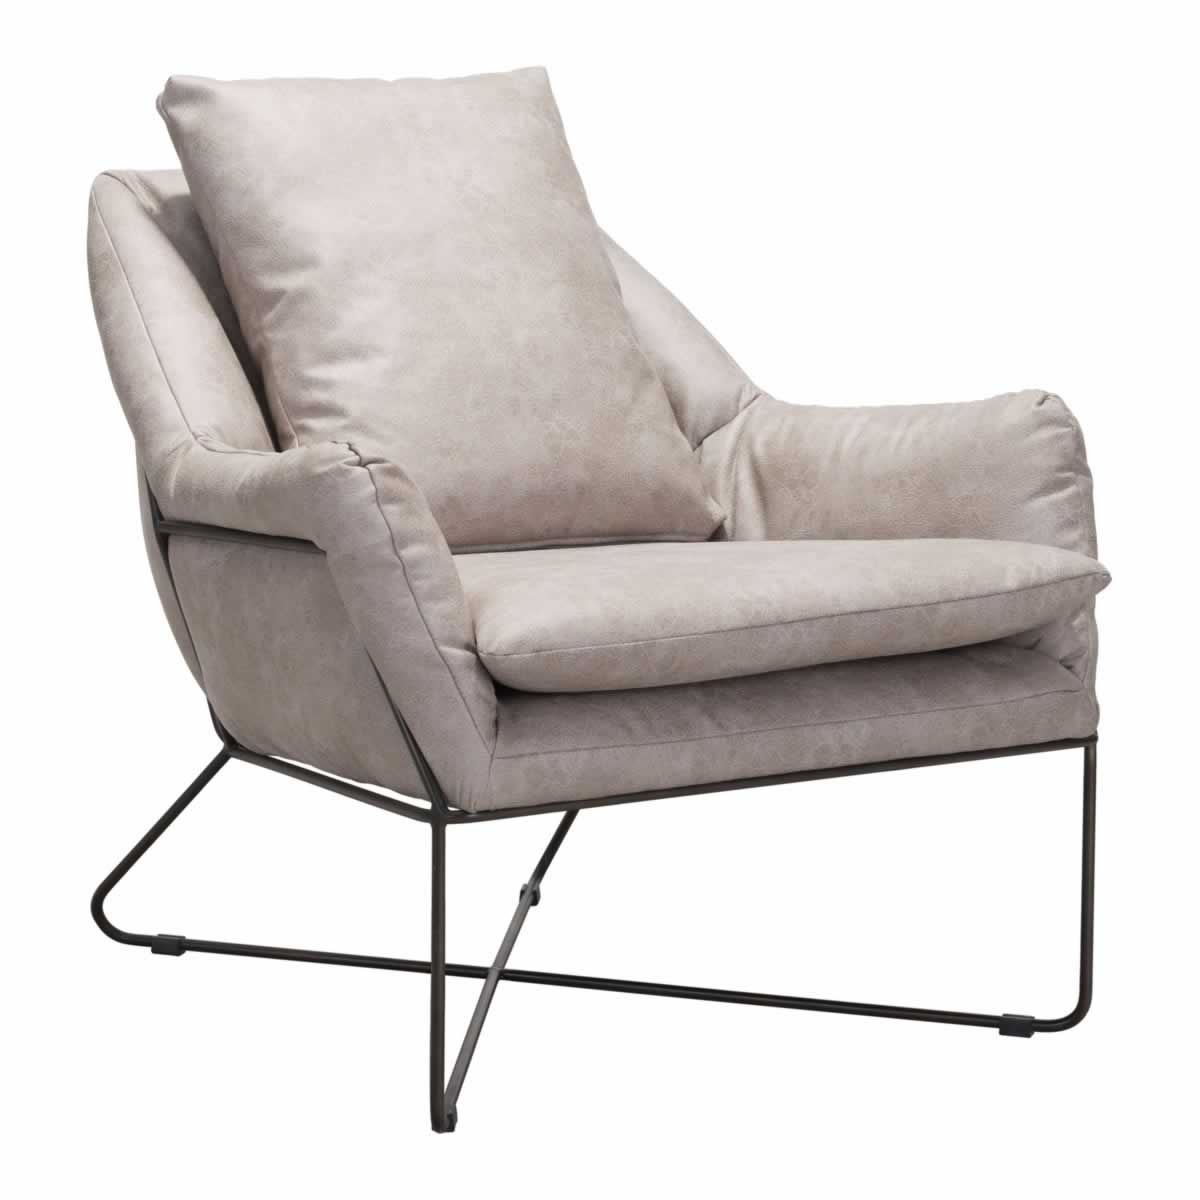 Zuo Finn Lounge Chair Distressed Gray